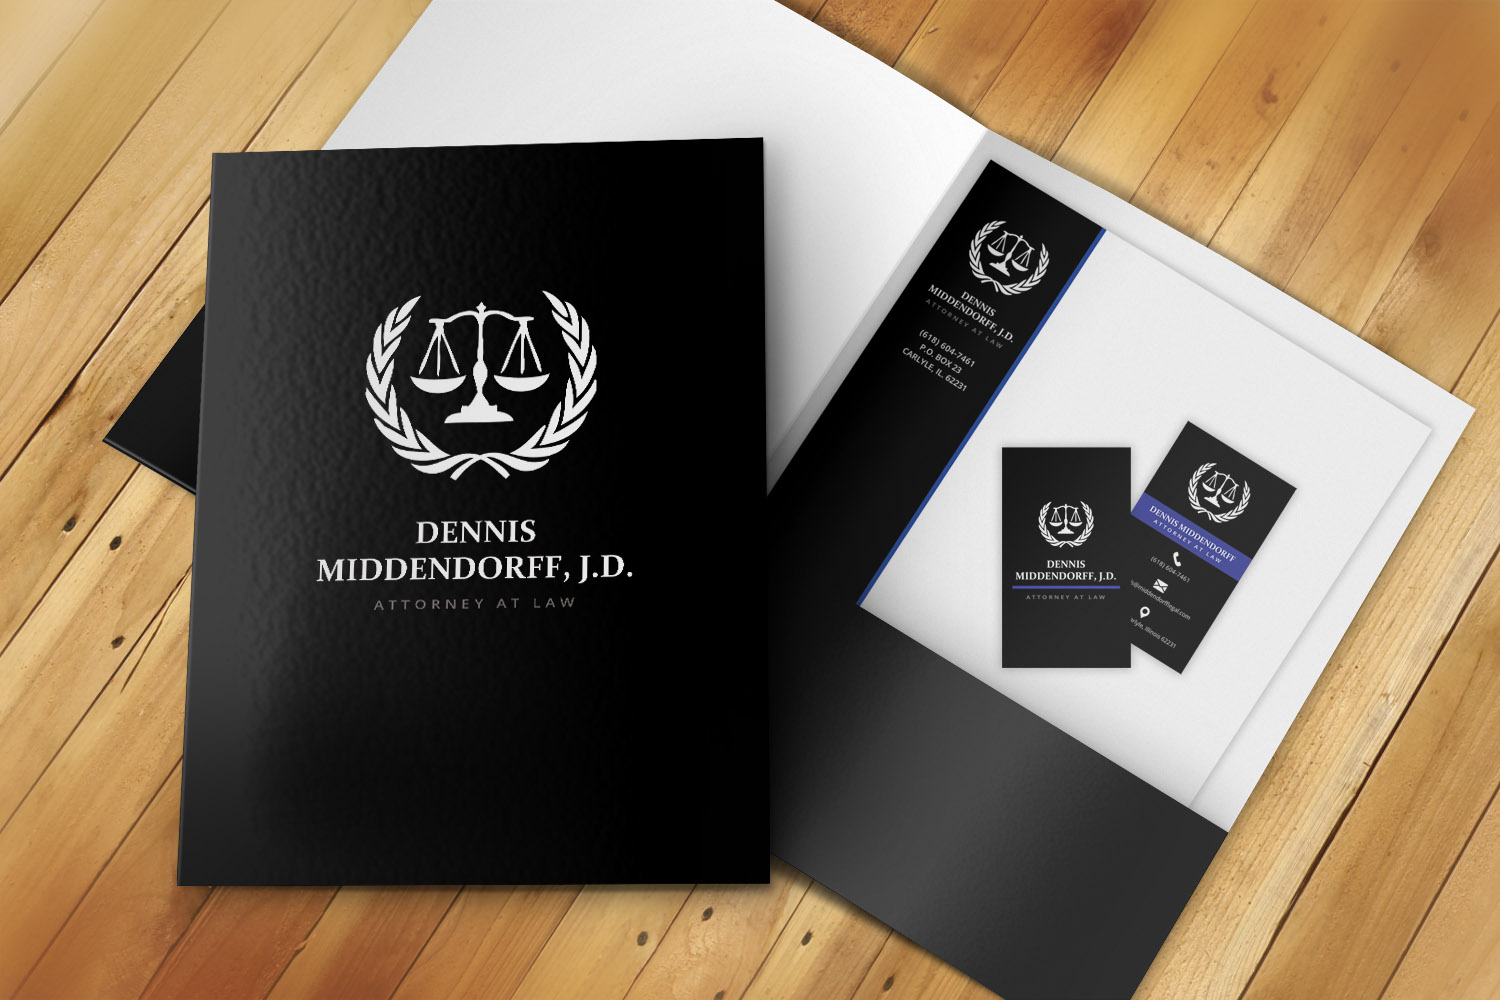 Middendorff Legal Services